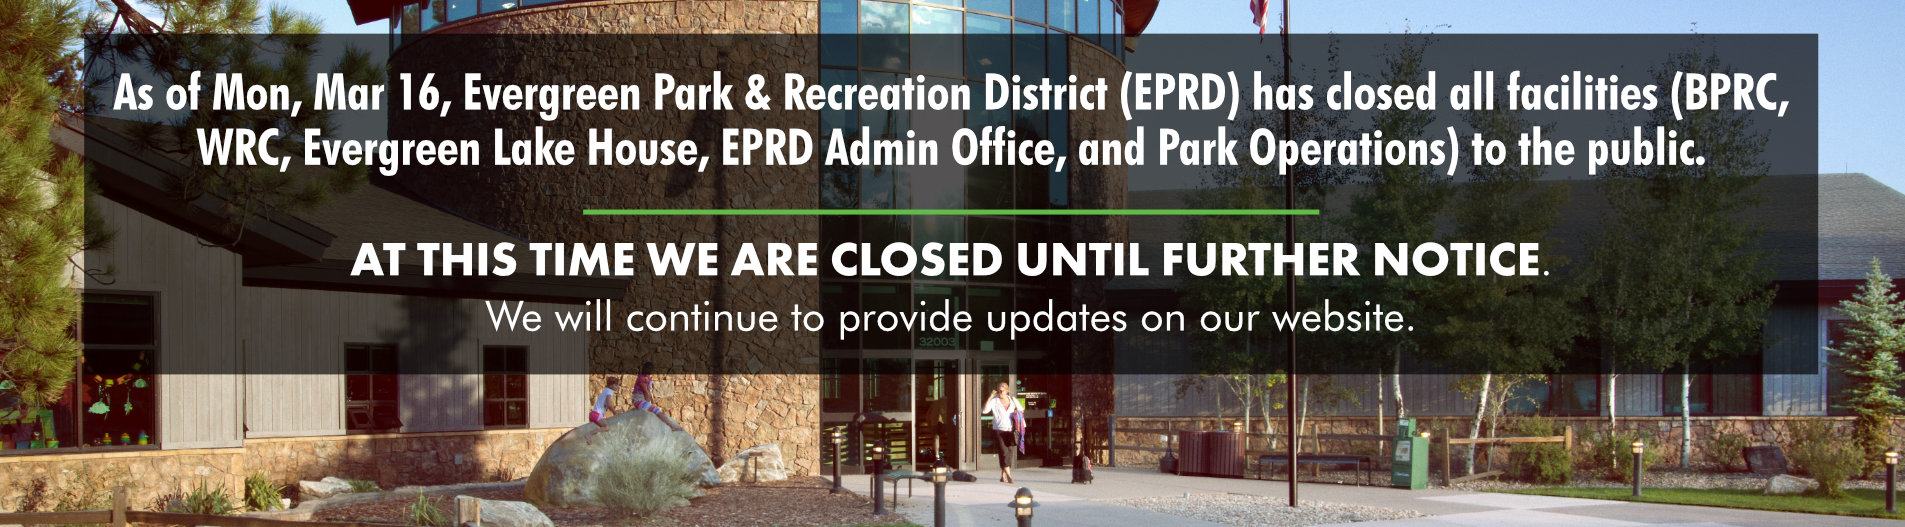 COVID-19 Alert: facilities and programs at EPRD are closed until April 30. Anticipated opening date is Friday, May 1st.